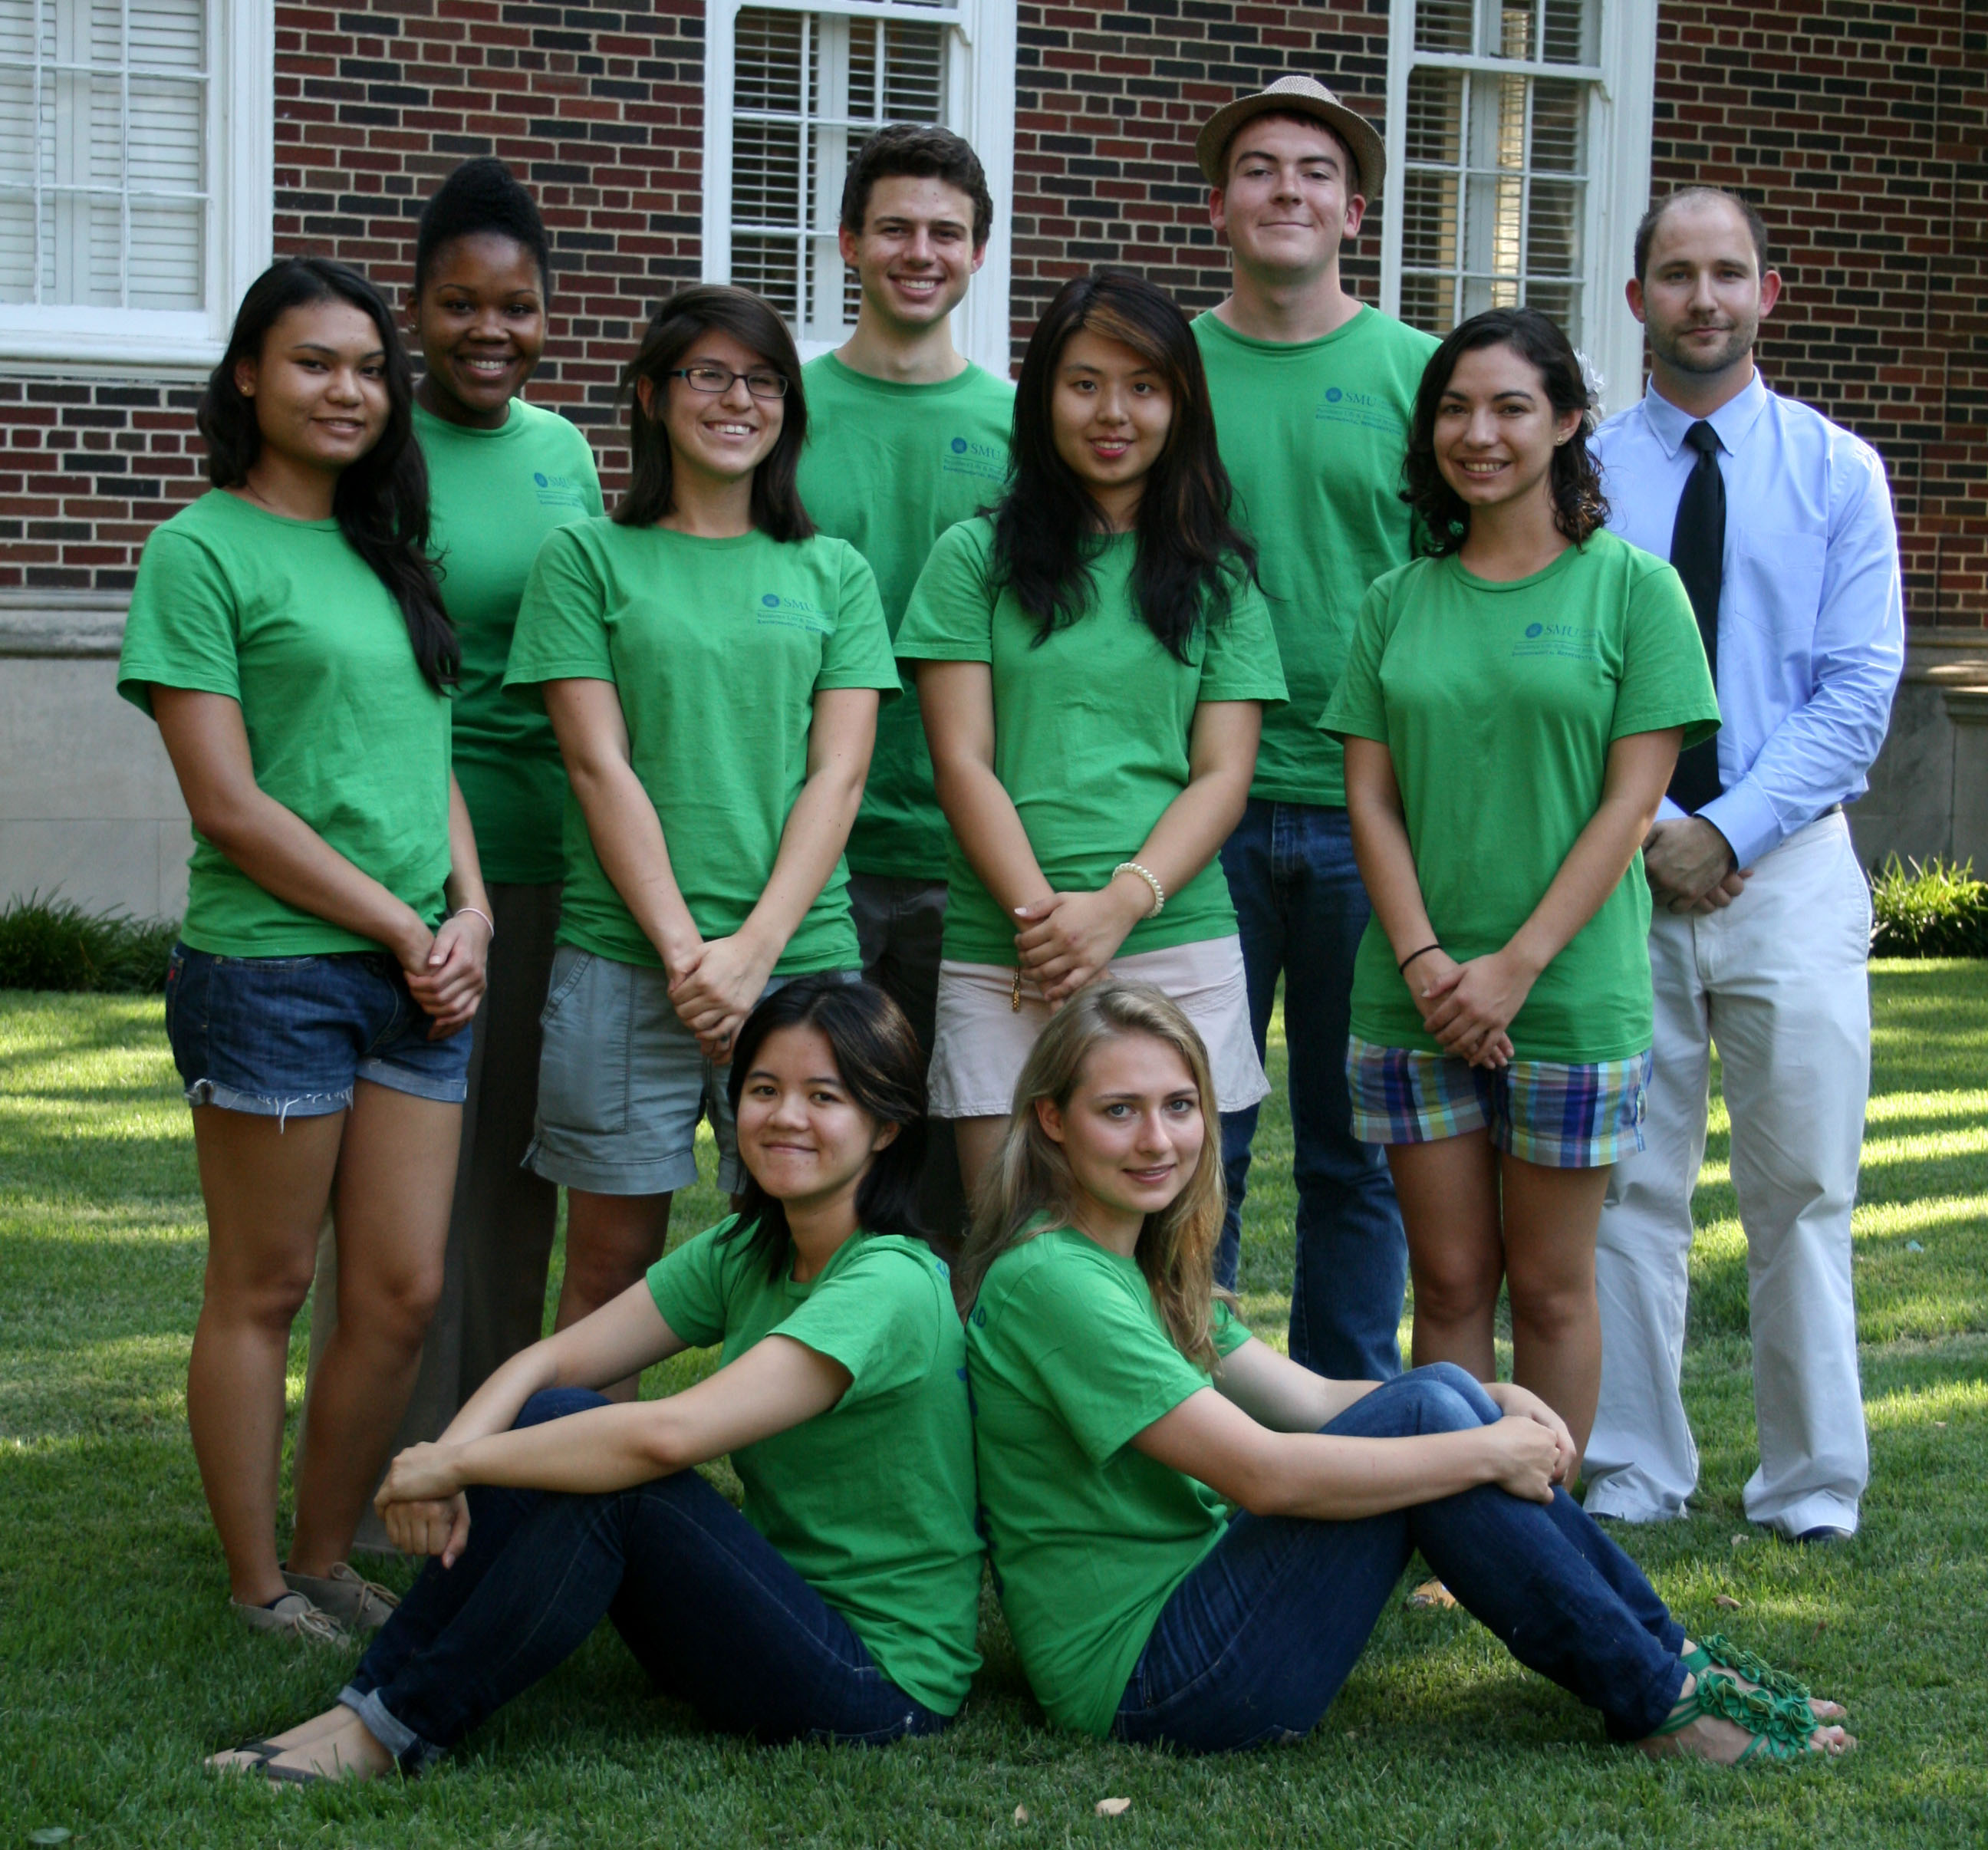 2012 E-Reps at SMU : Jomita Fleming (Assistant Director for Residence Life), Nicholas Saulnier, Michael Wilburn, Jonathan Hess (Residence Life), Quyen Tong, Marissa Ocampo, Lucy Yu, Jewel Lipps, Jingjing Yang, and Gwen Carris.